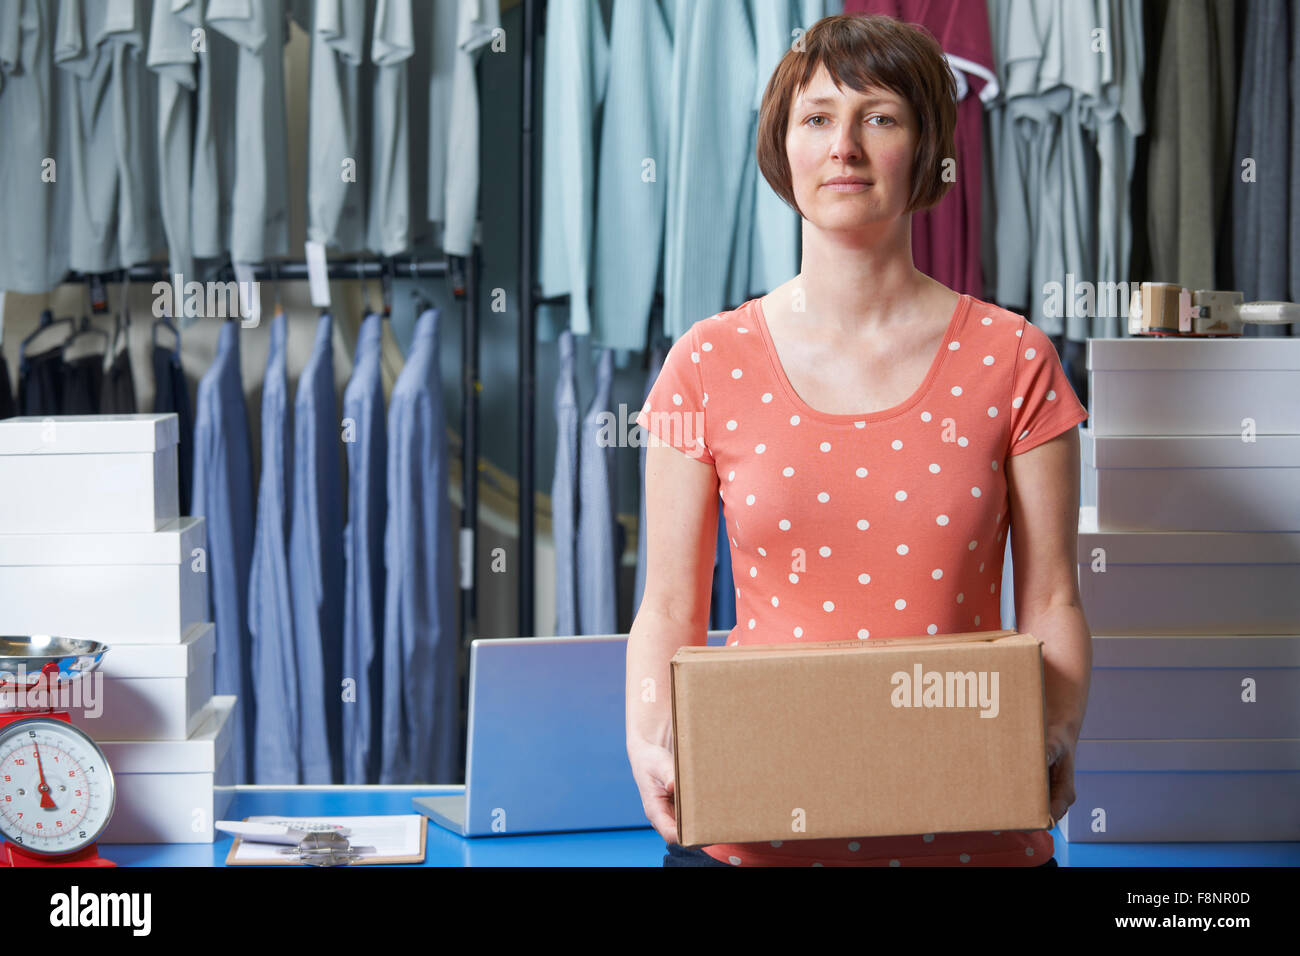 Woman Running On line Vêtements Business Photo Stock